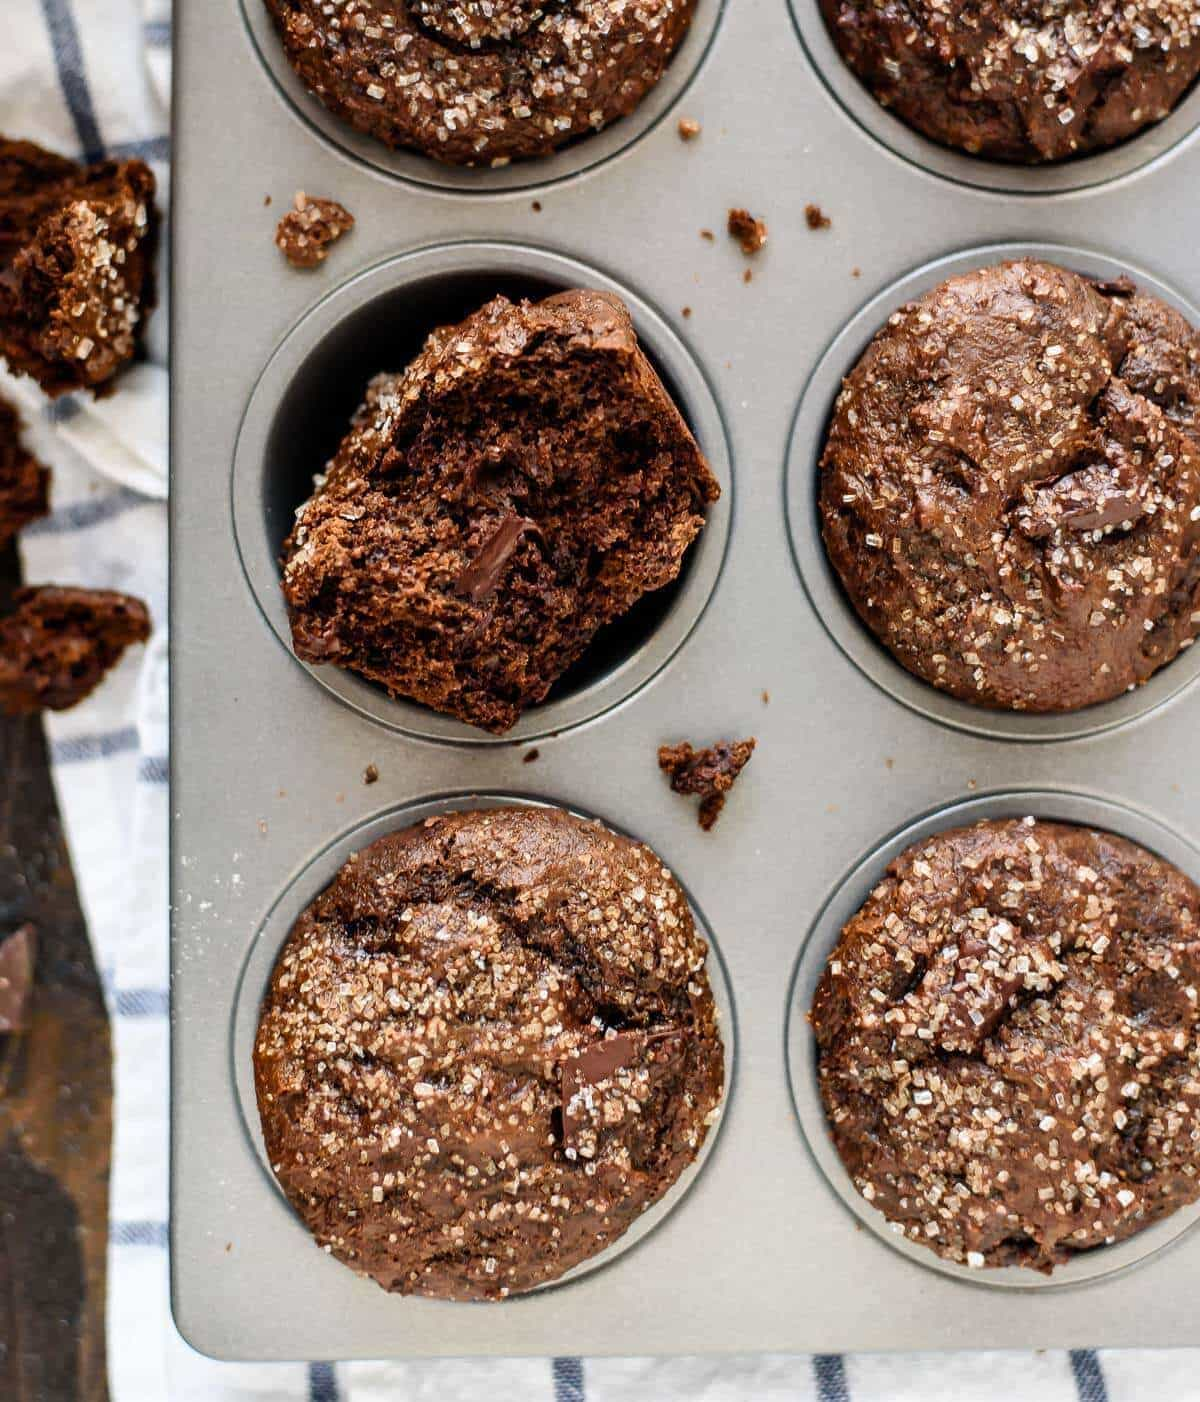 The BEST Gingerbread Muffins made with Greek yogurt, coconut oil, and dark chocolate, Every bite is loaded with chocolate and spices. I can't believe these are healthy muffins!